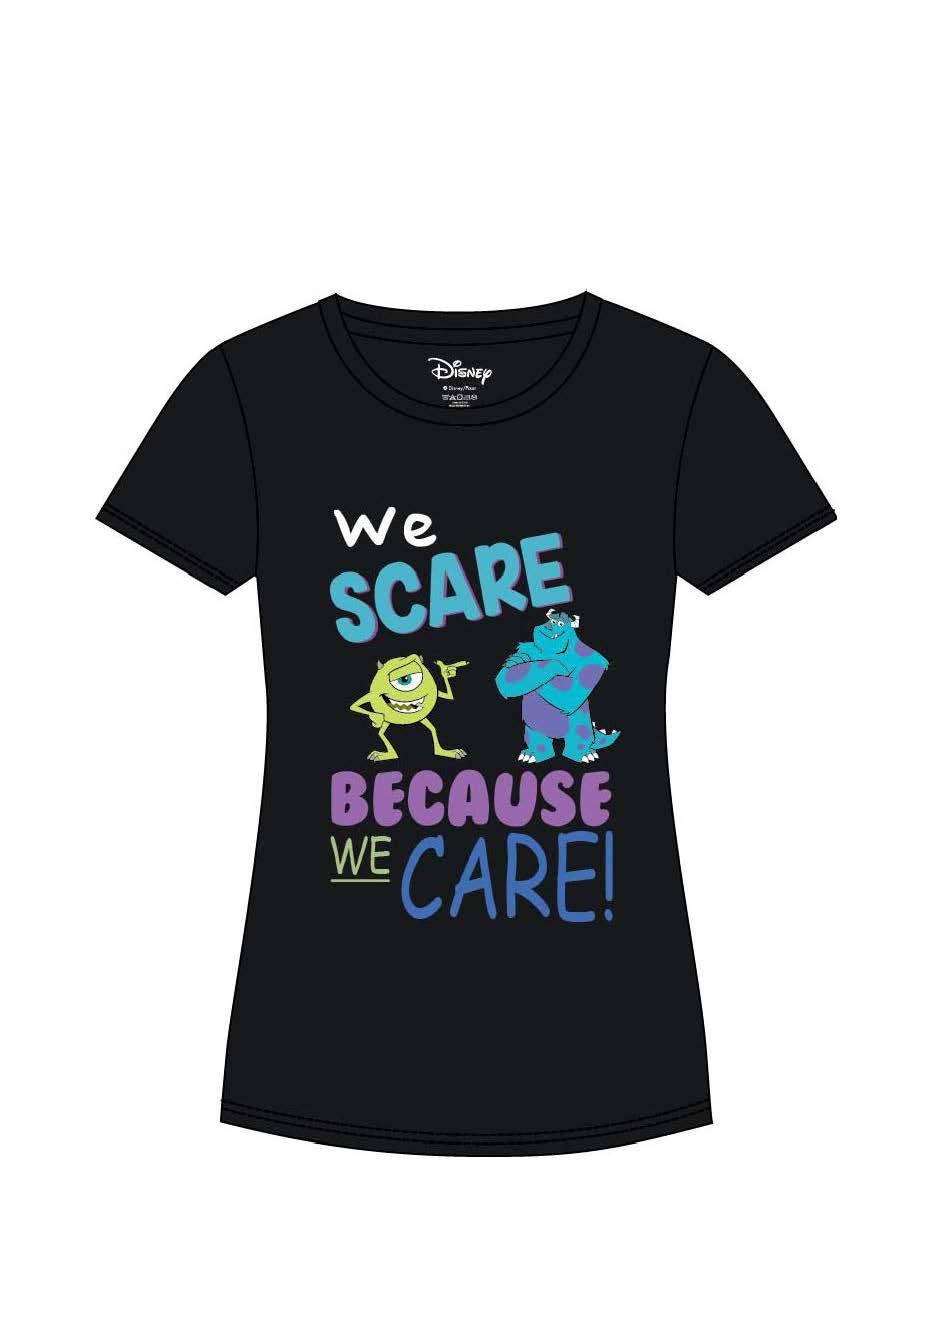 Monsters Inc. Ladies T-Shirt We Scare Because We Care Size XL